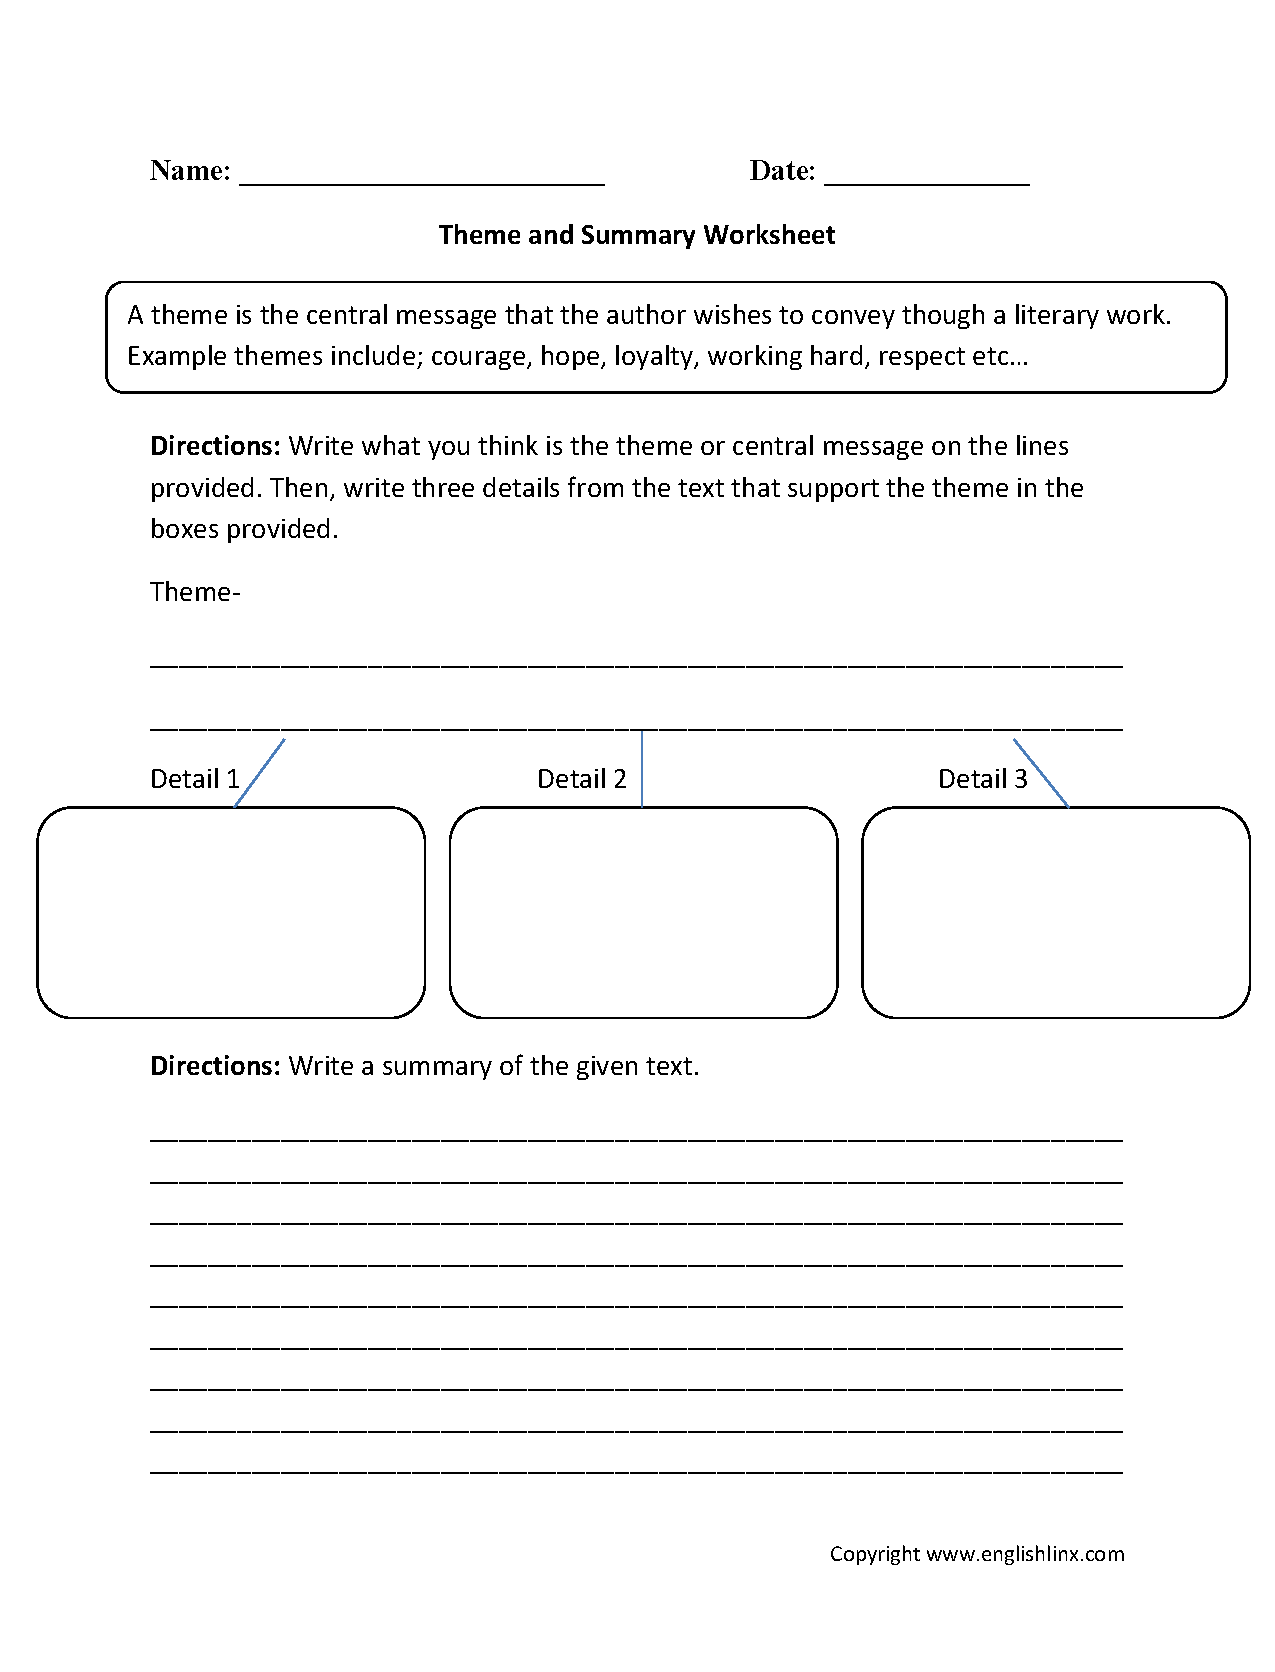 worksheet Summary Worksheet theme worksheets and summary worksheets